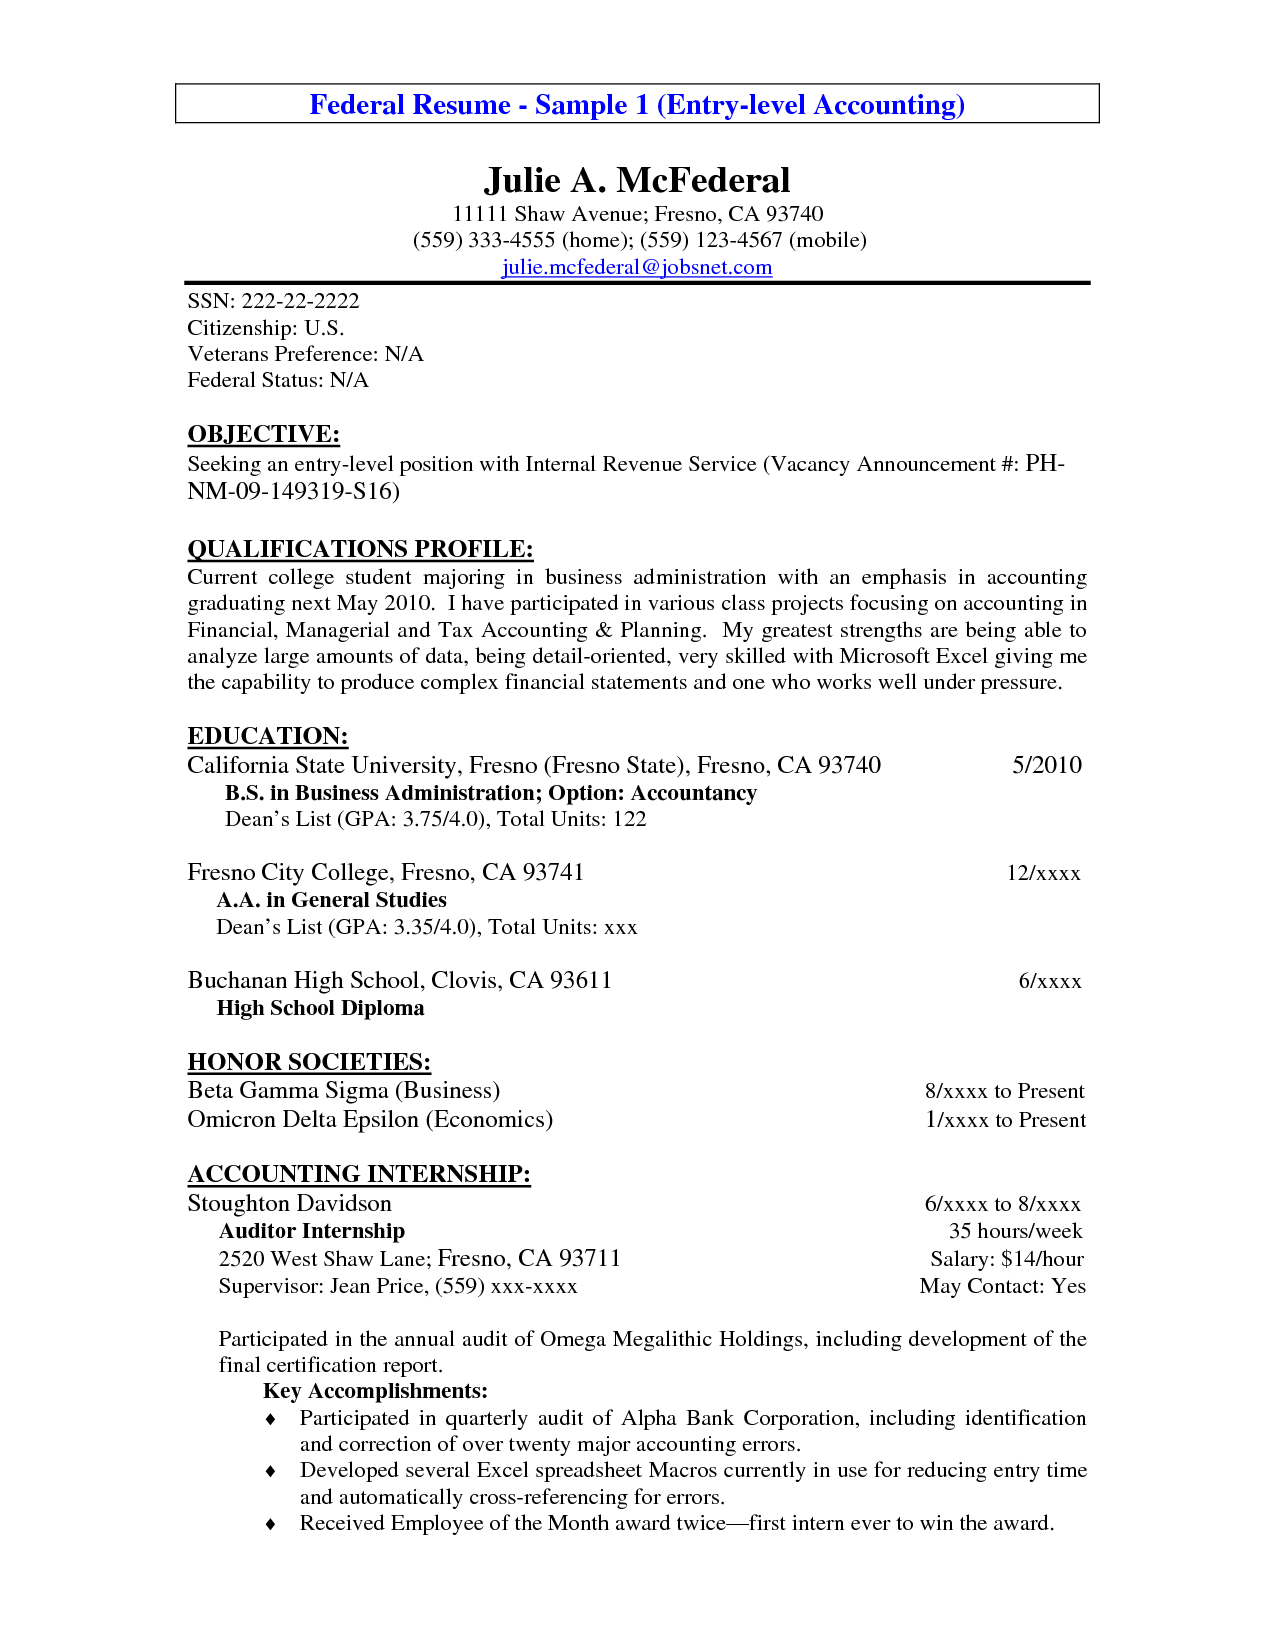 entry level resume samples.html